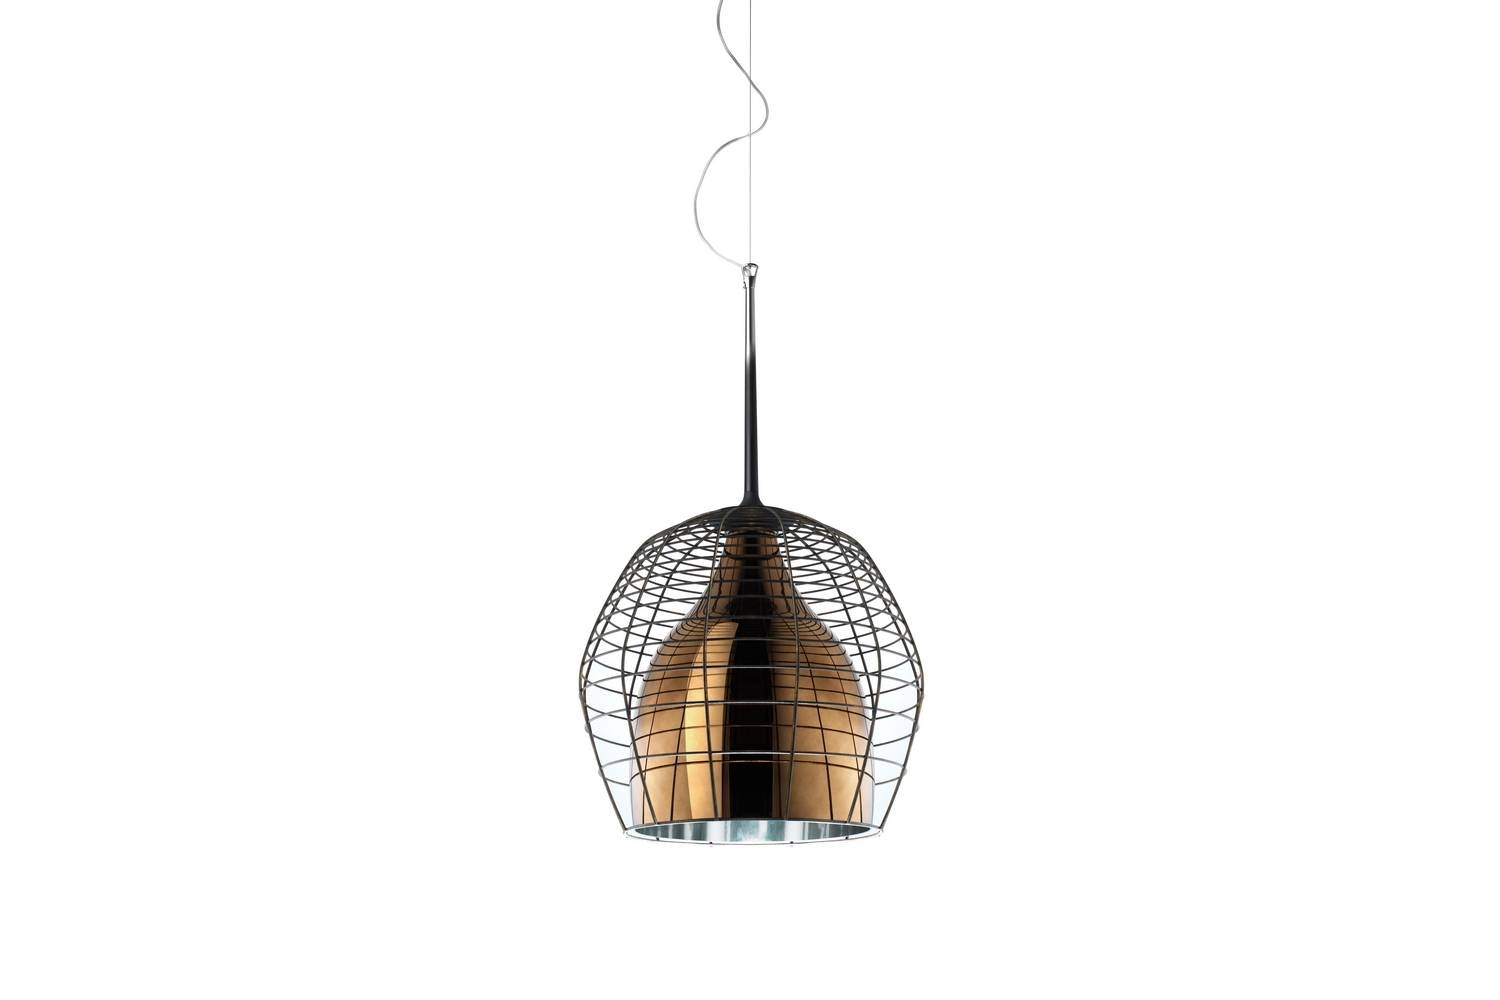 Cage Suspension Lamp by Successful Living from DIESEL for Foscarini